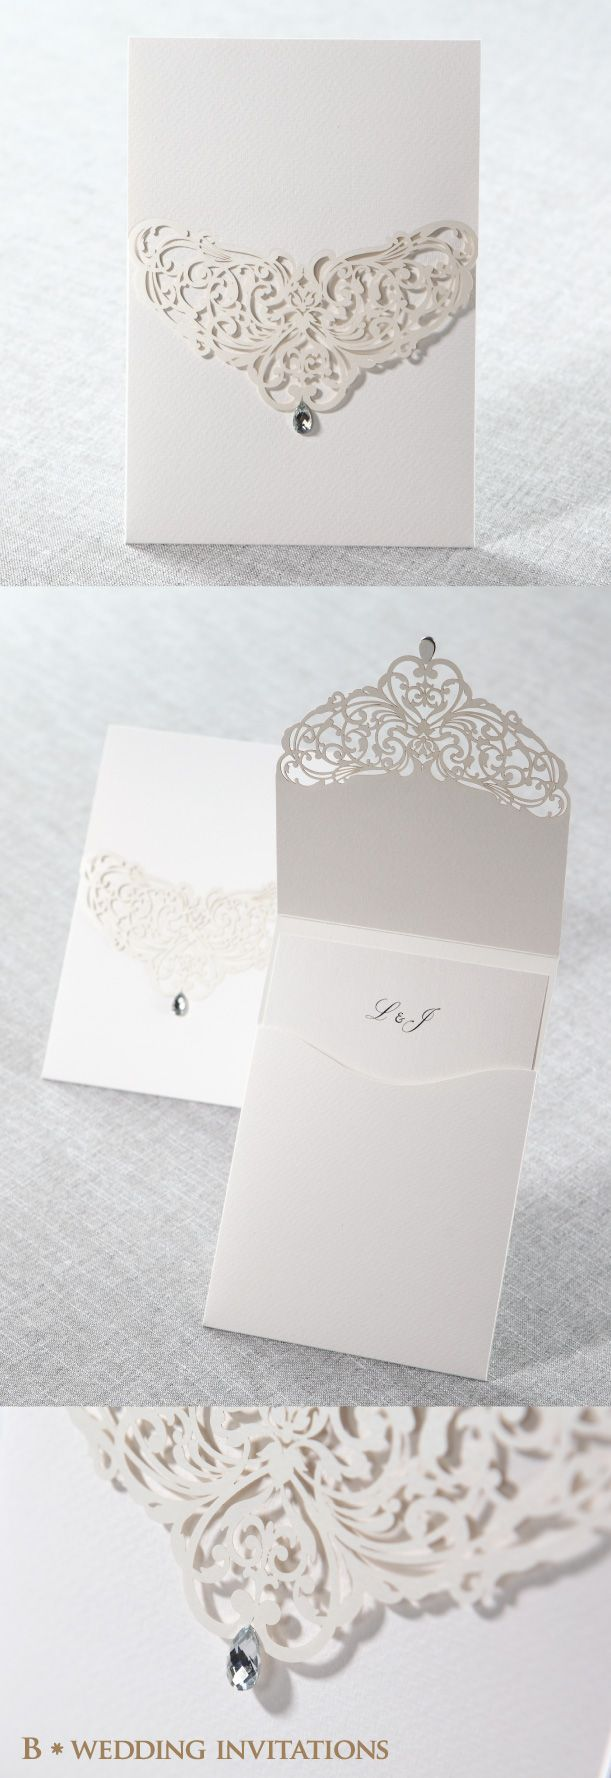 1000 images about Tarjetas para Matrimonio on Pinterest